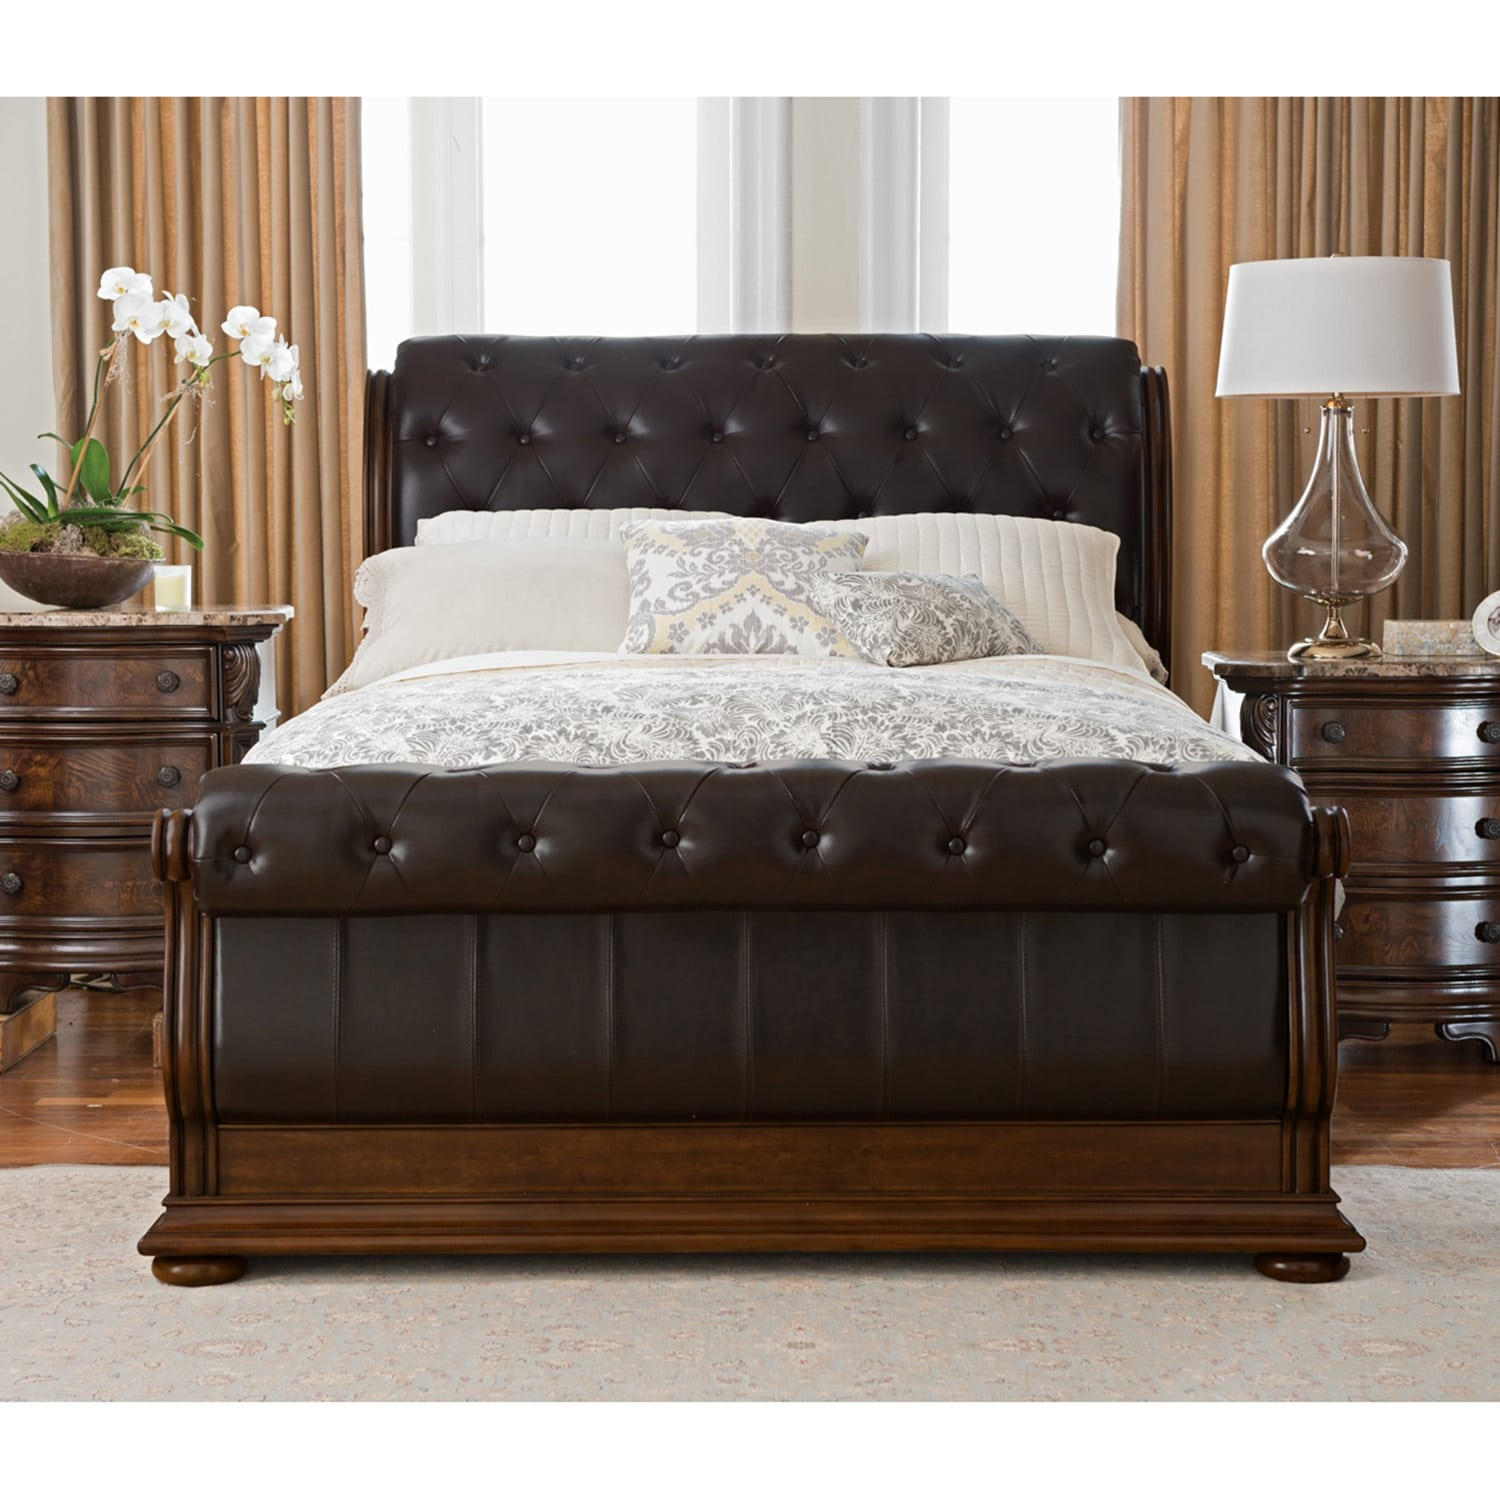 monticello 6 piece king sleigh bedroom set pecan value city furniture. Black Bedroom Furniture Sets. Home Design Ideas